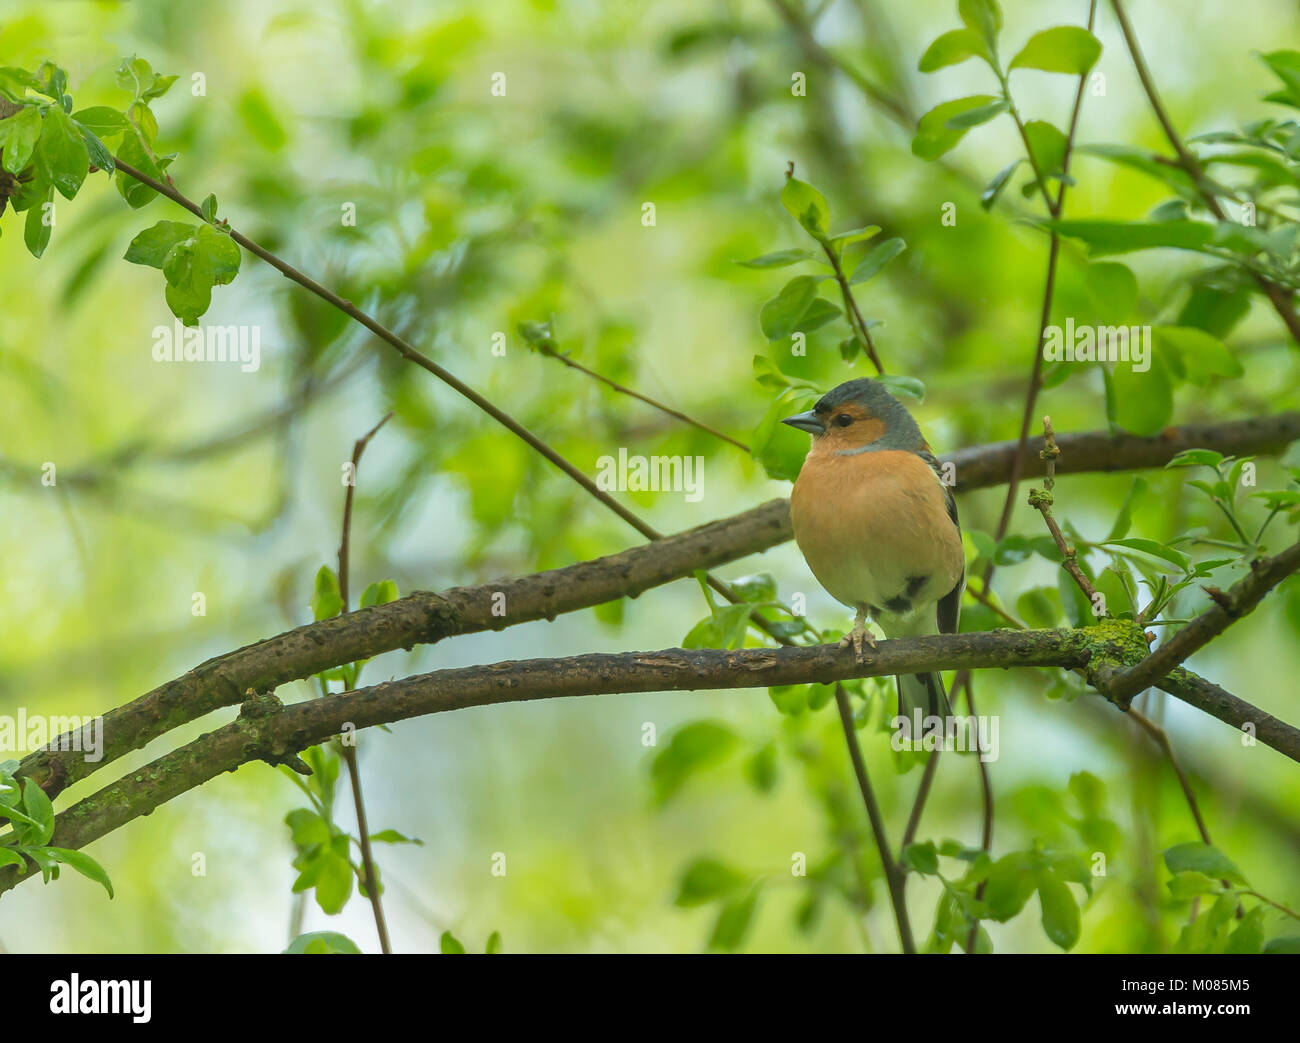 Chaffinch, Fringilla coelebs, woodland, Shropshire, England, UK, GB, Europe - Stock Image